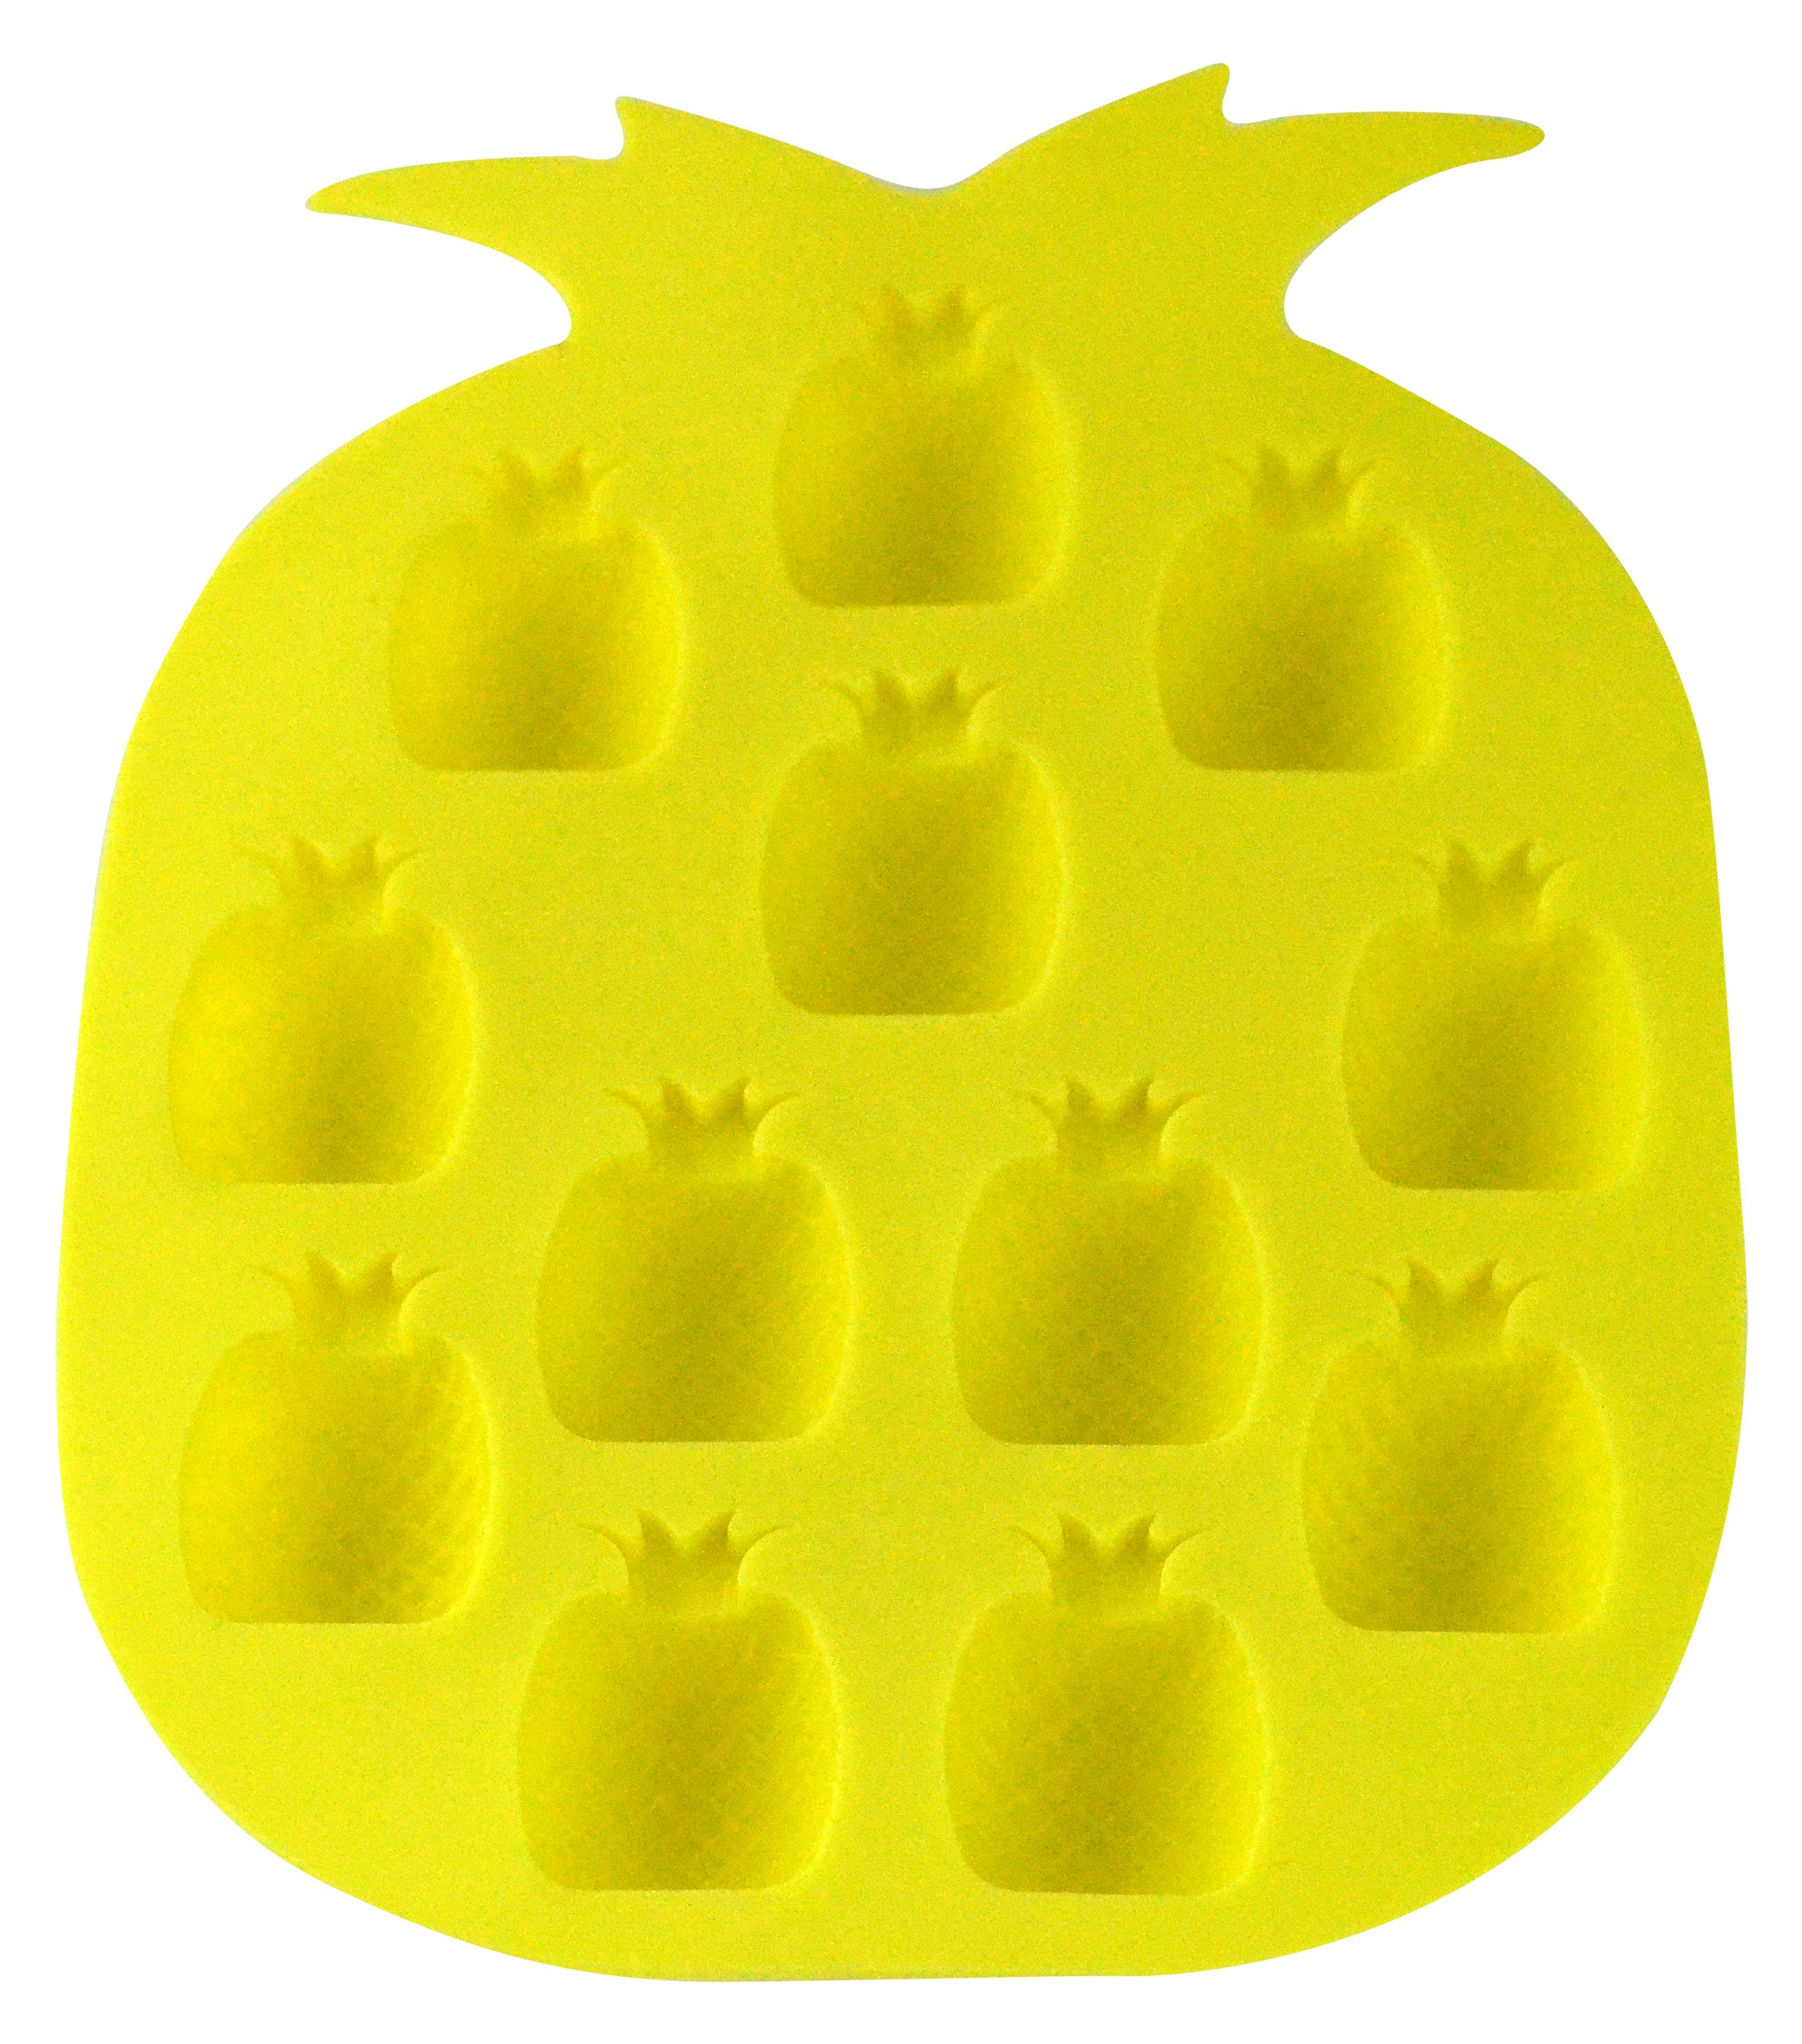 Pineapple Ice Cube Tray Chocolate Mould Mold